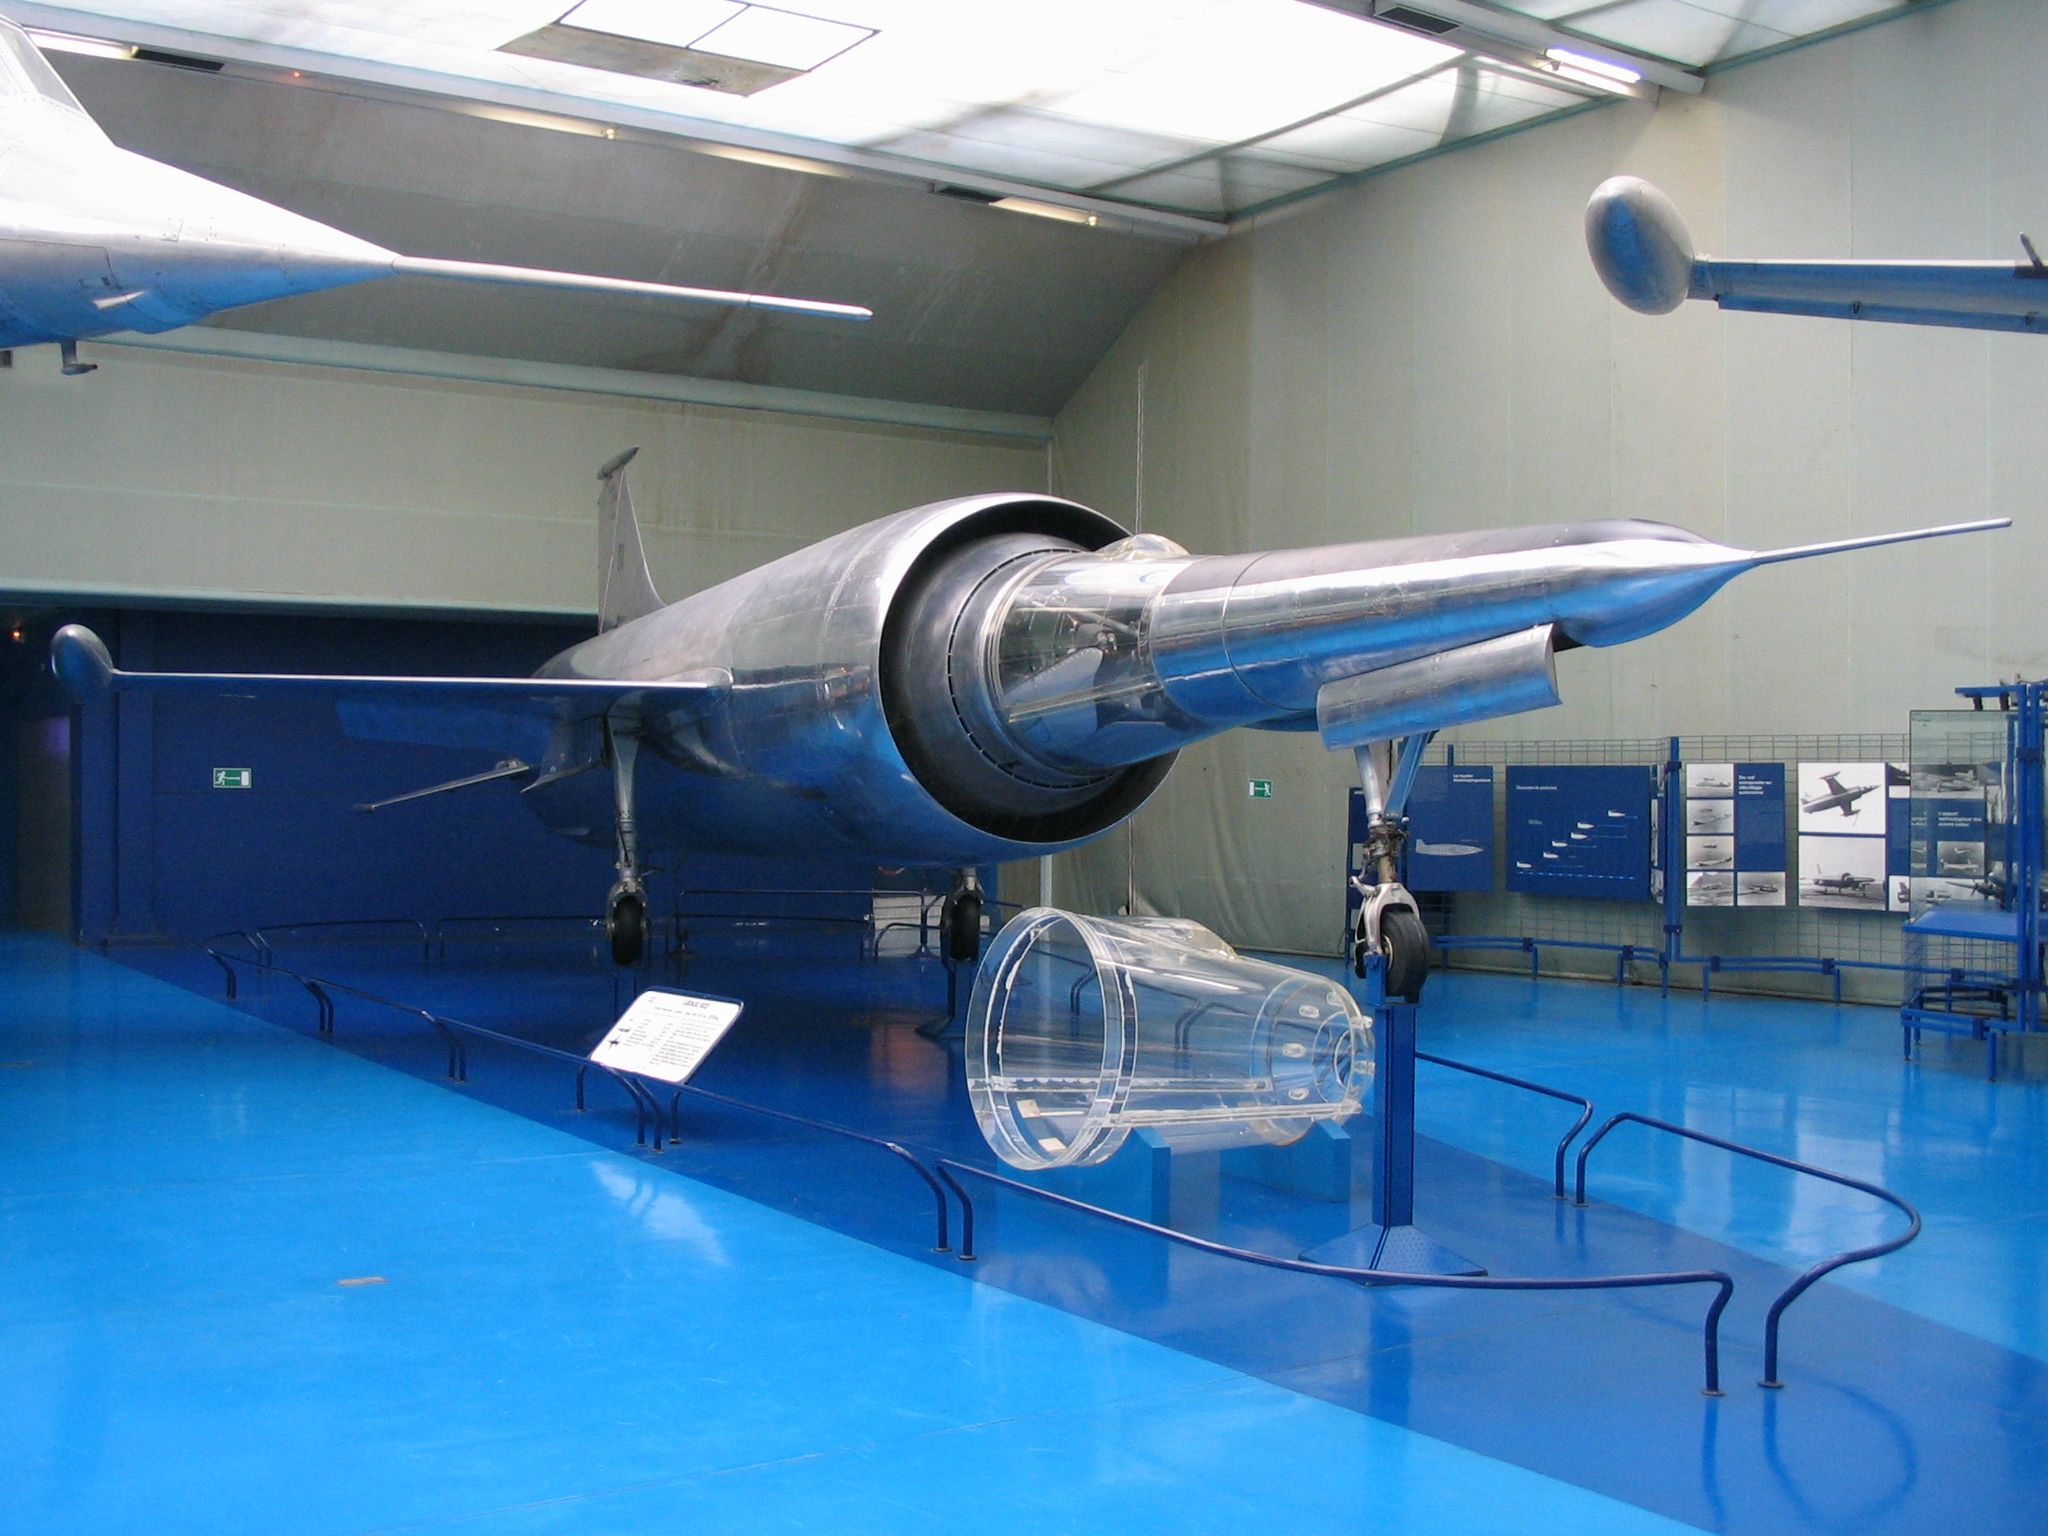 The Leduc 0.22 was the prototype of a Mach 2 fighter built in France in 1956